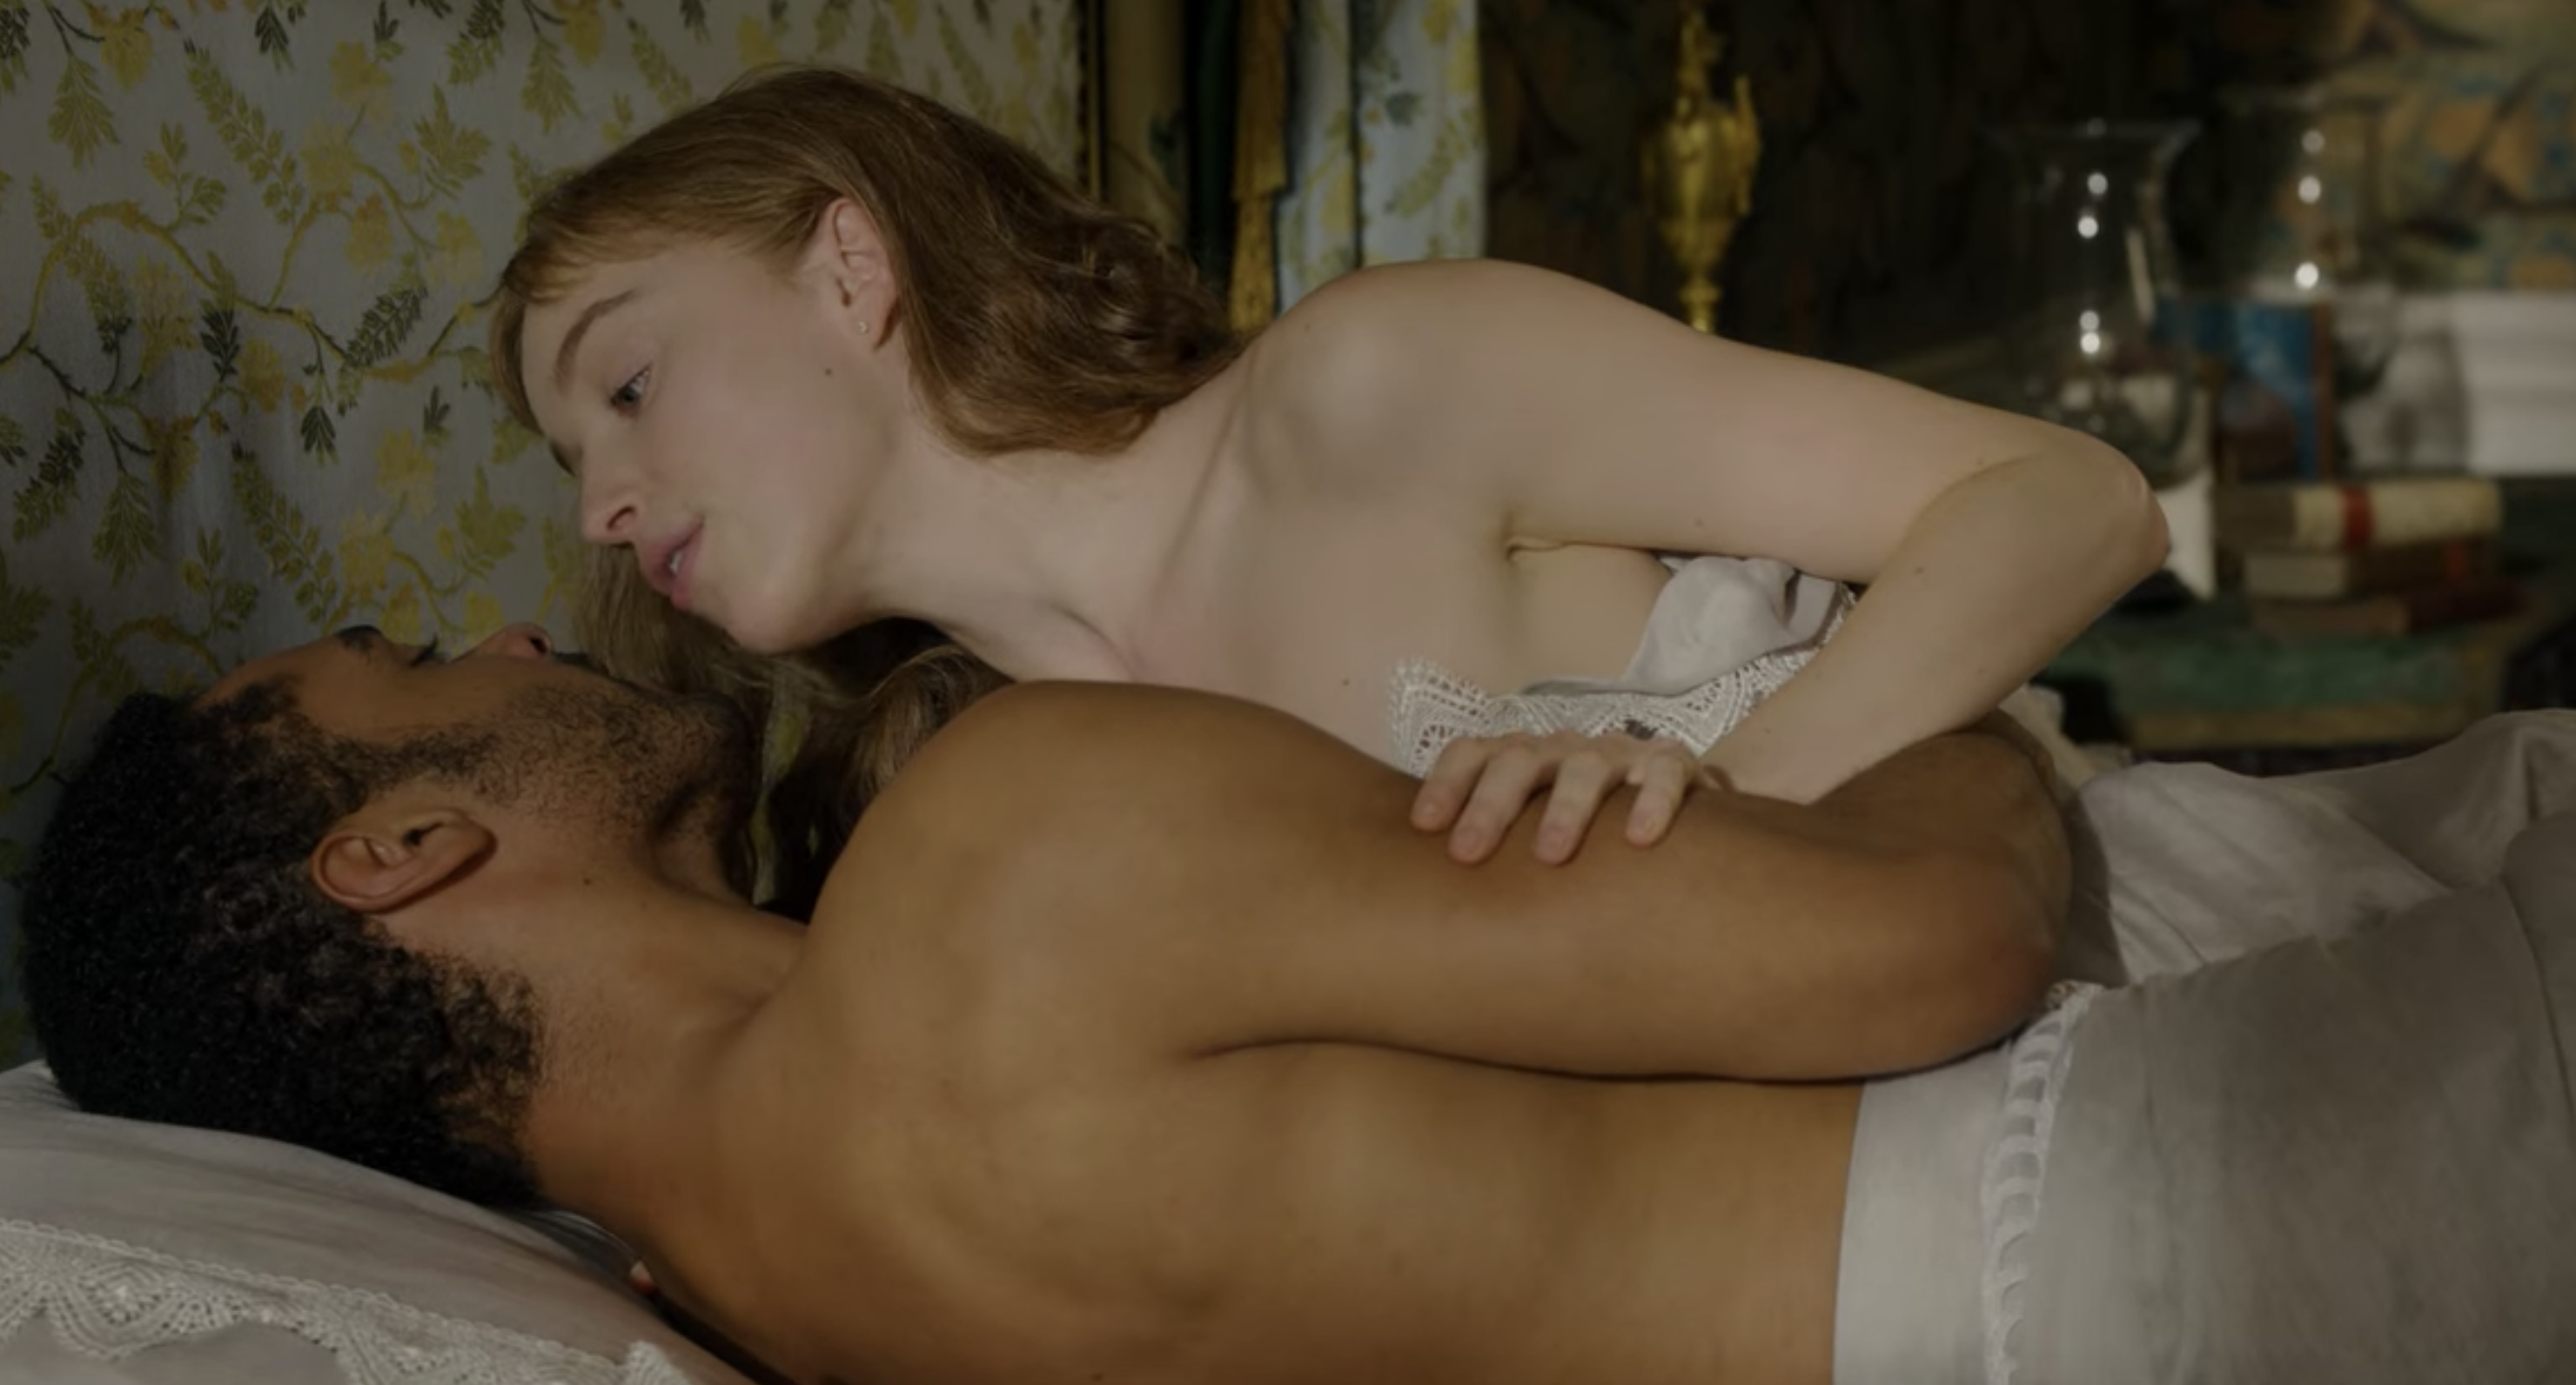 Simon and Daphne kissing in bed